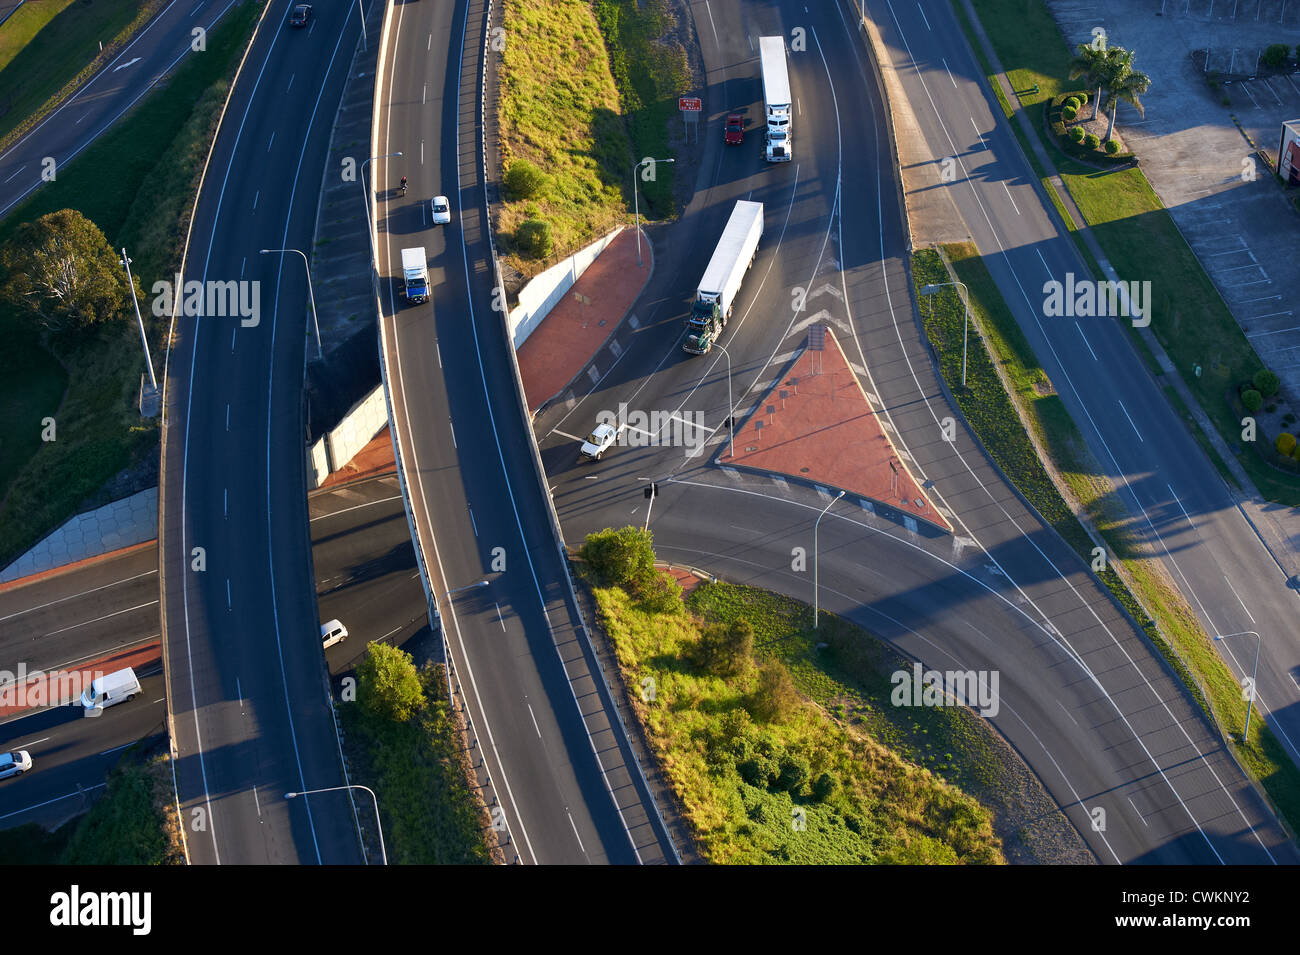 Aerial view of overpass Brisbane Australia - Stock Image